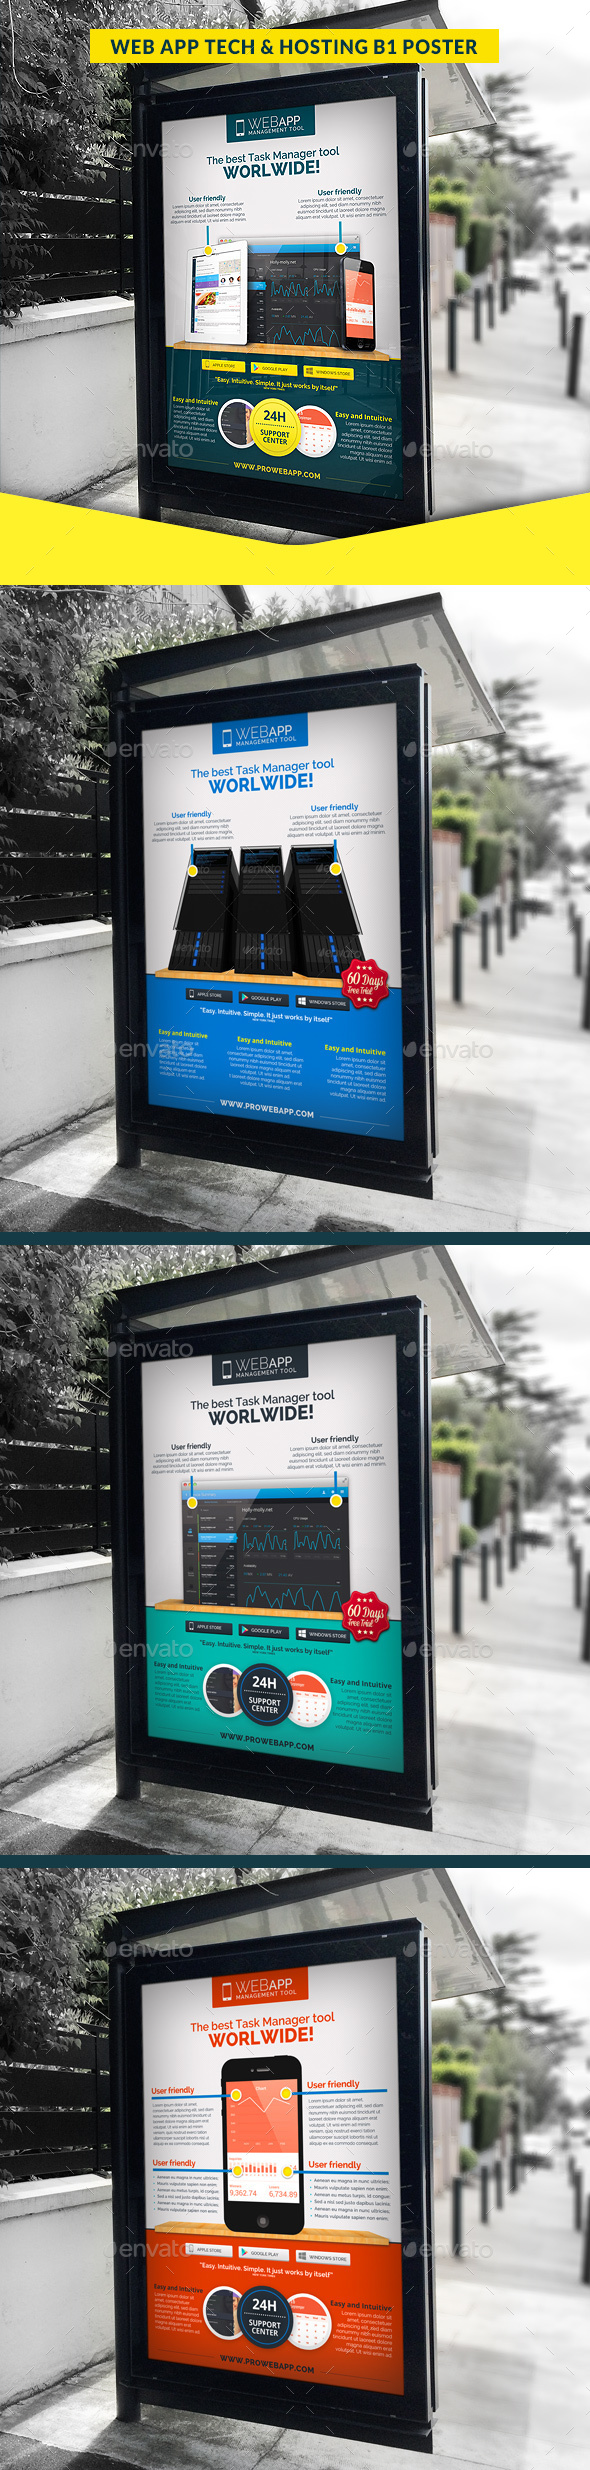 Web App Tech & Hosting Business B1 Poster - Signage Print Templates